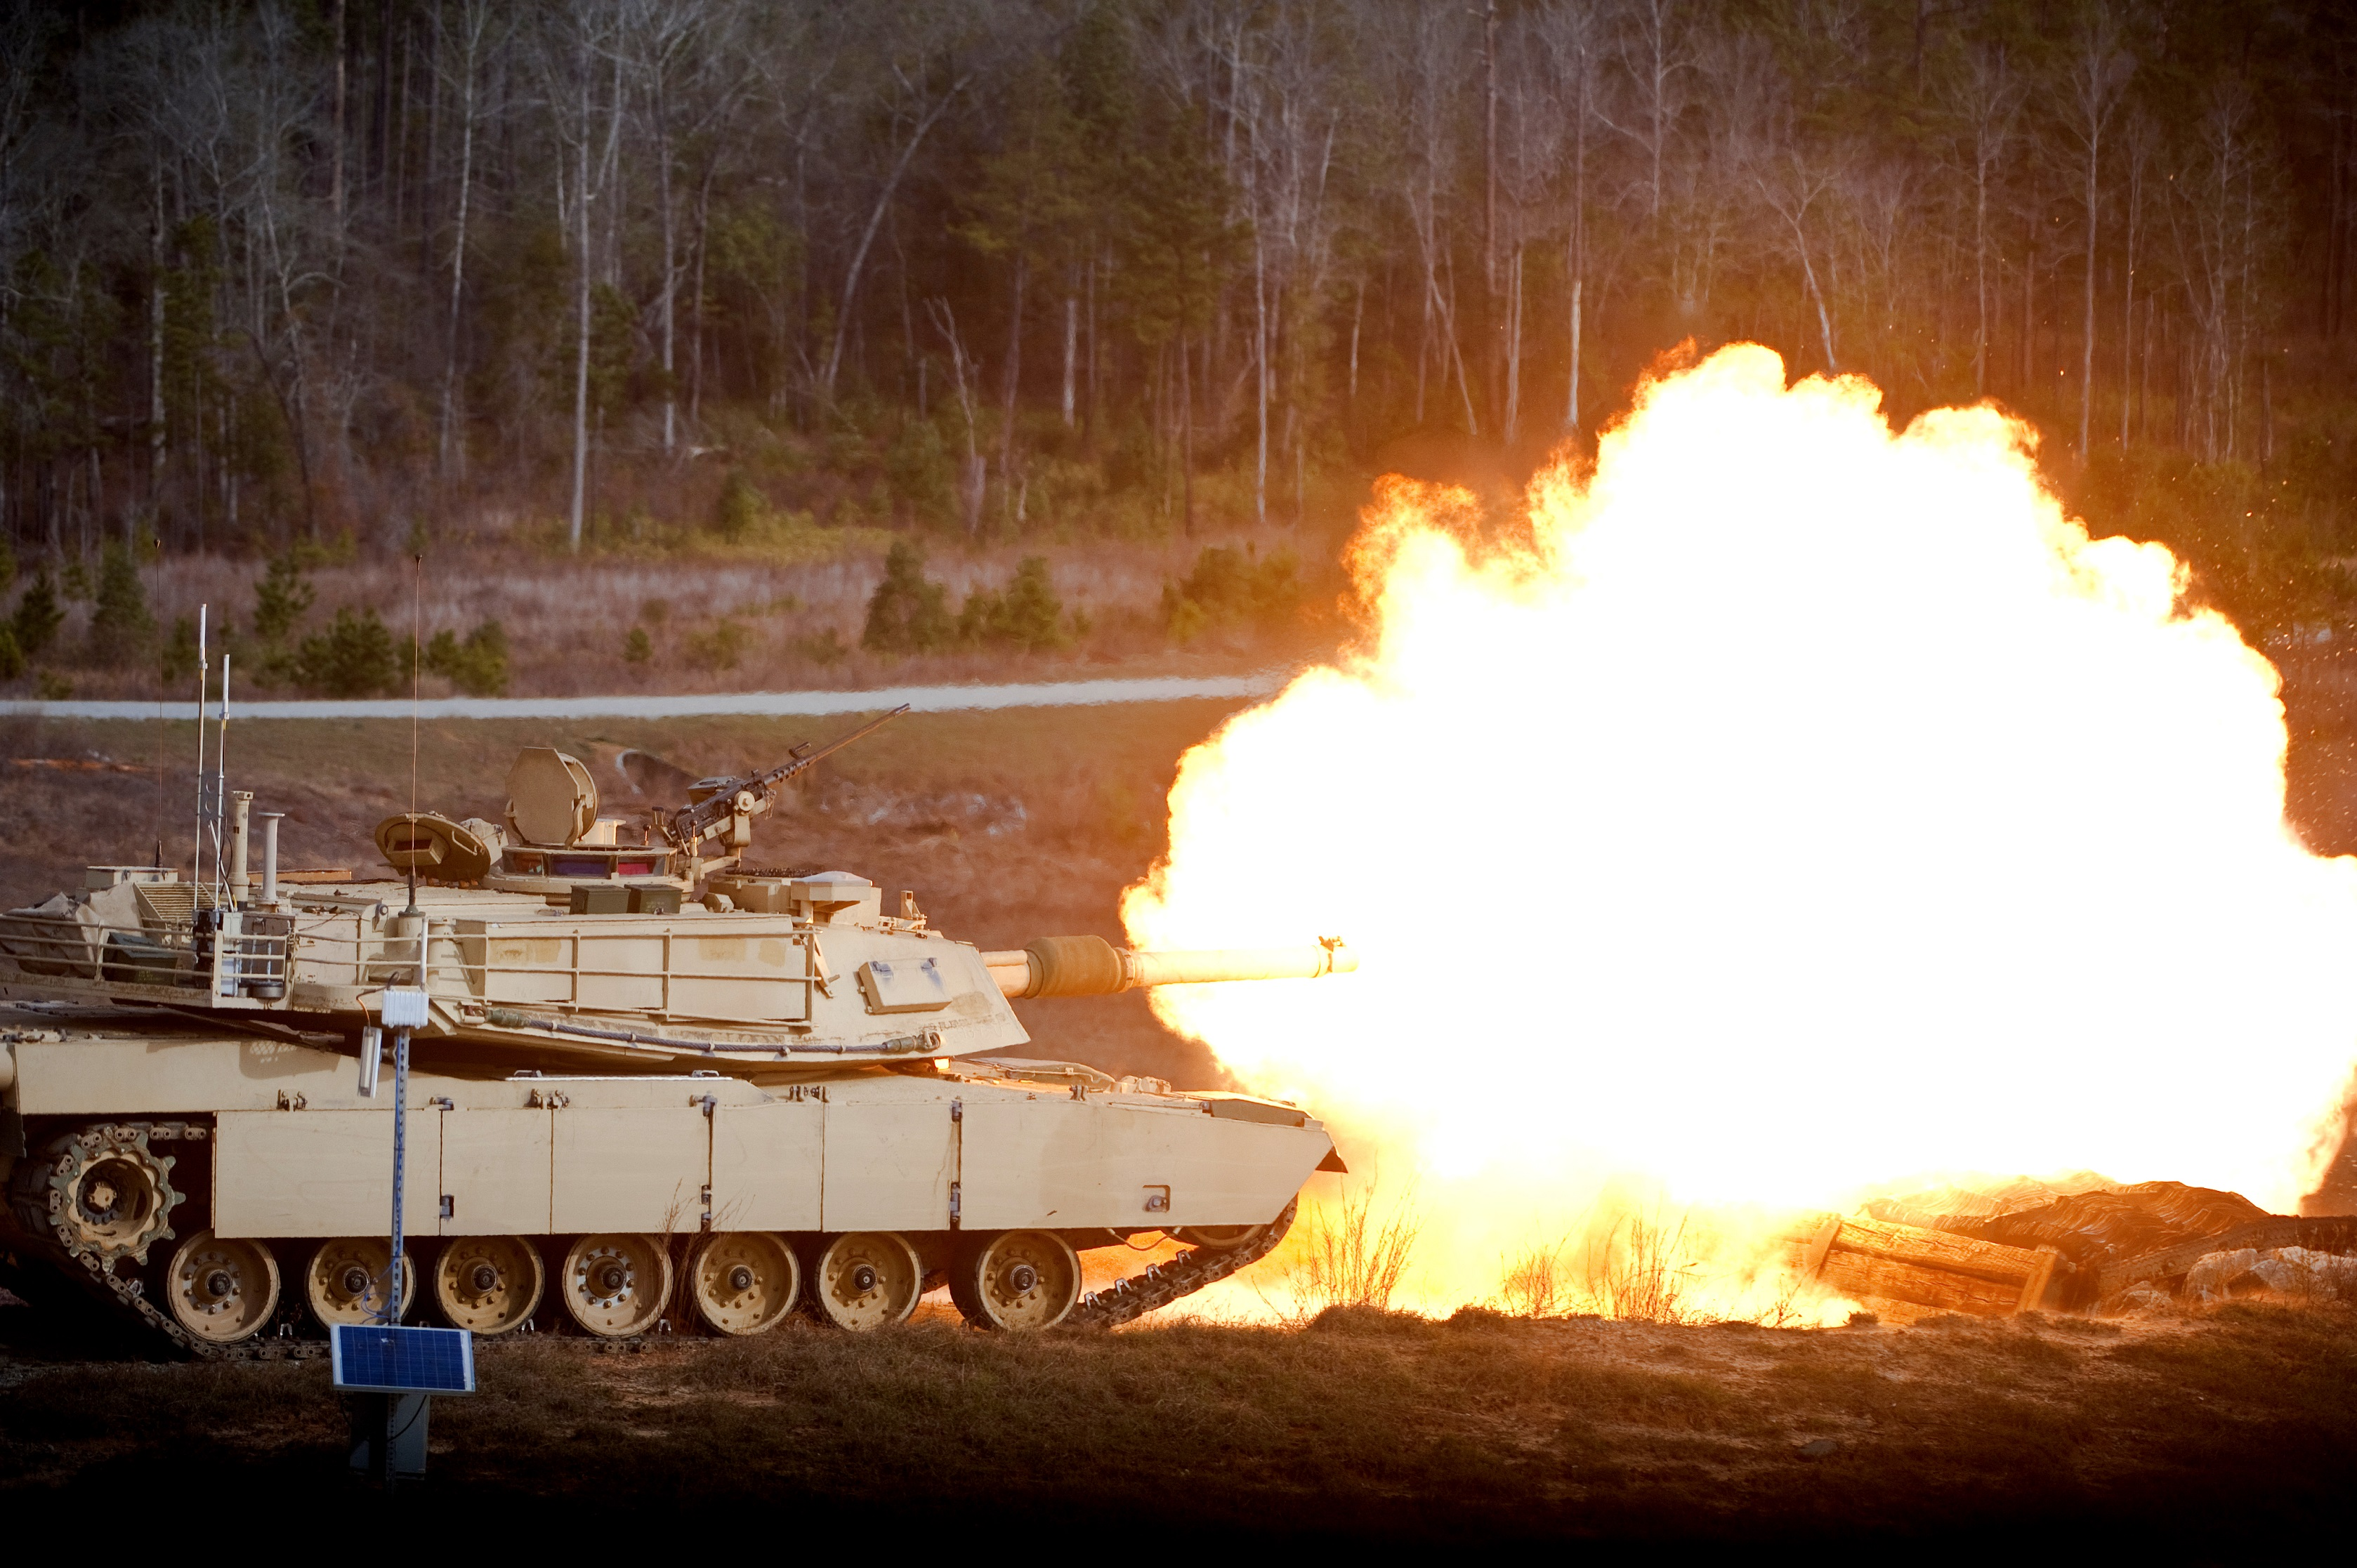 North Korea's Tanks Would Get Slaughtered by the U.S. in a War